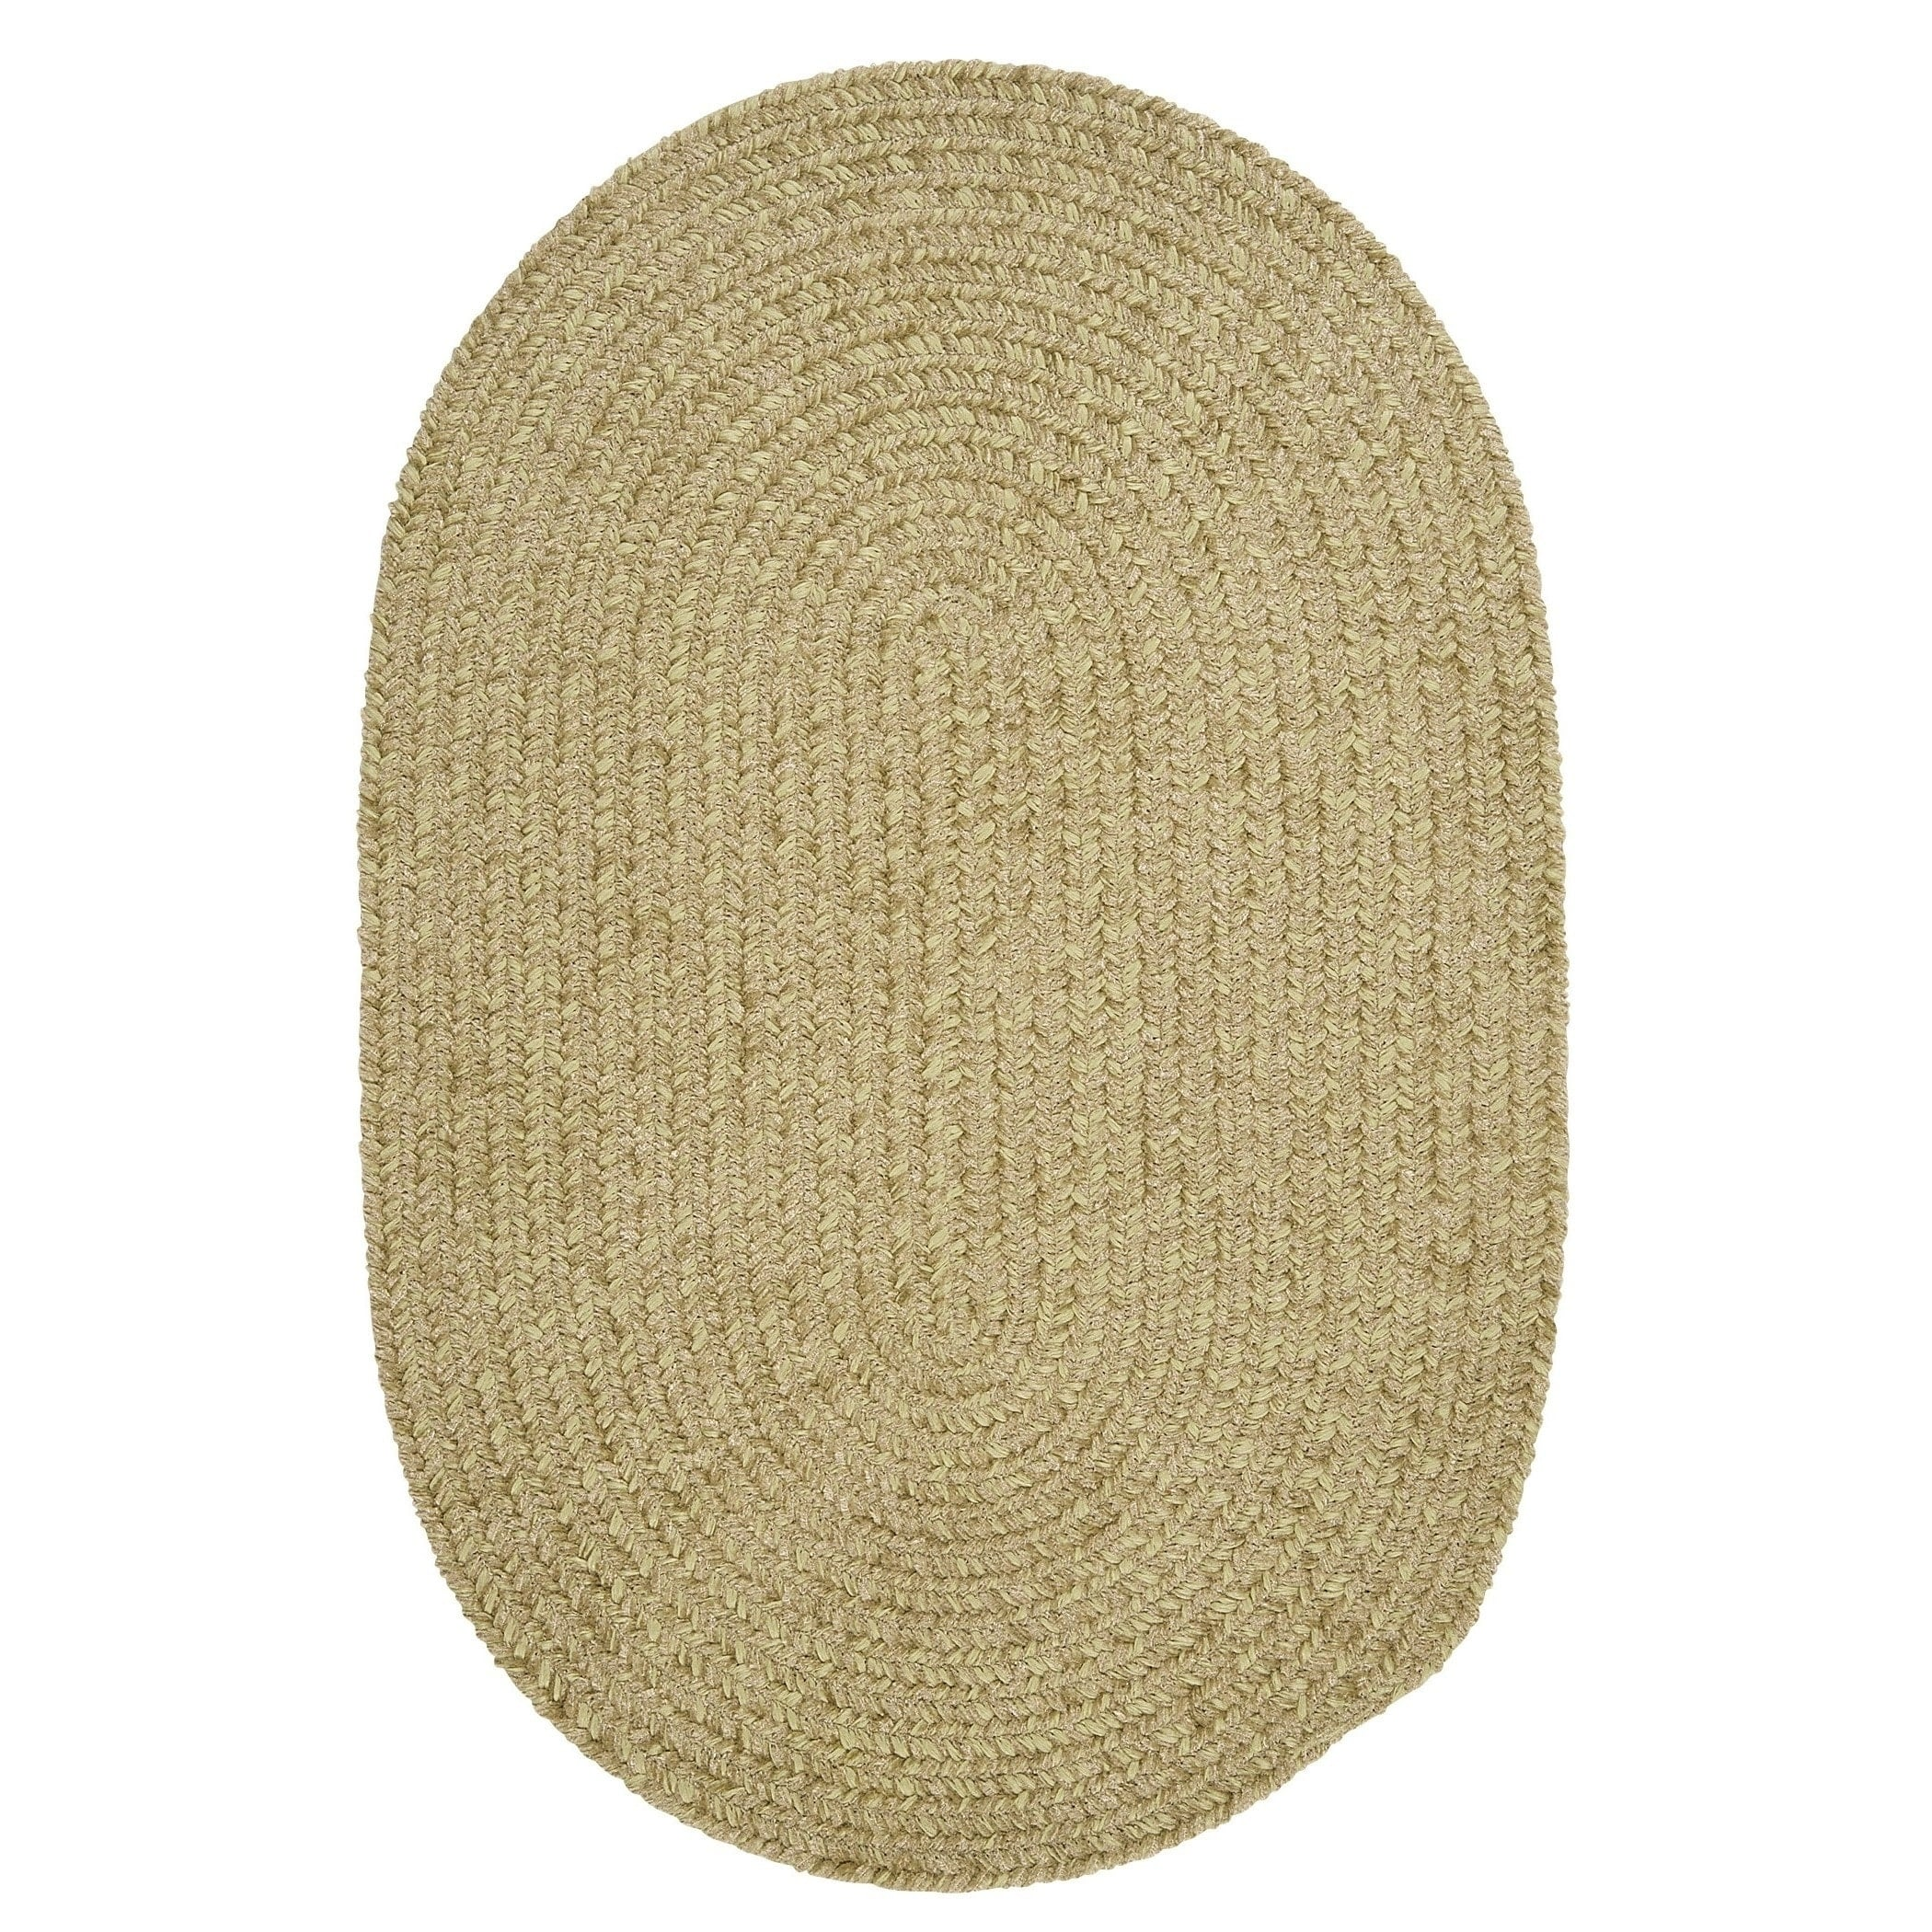 Colonial Mills Soft Chenille Braided Reversible Rug USA MADE - 5' x 7'